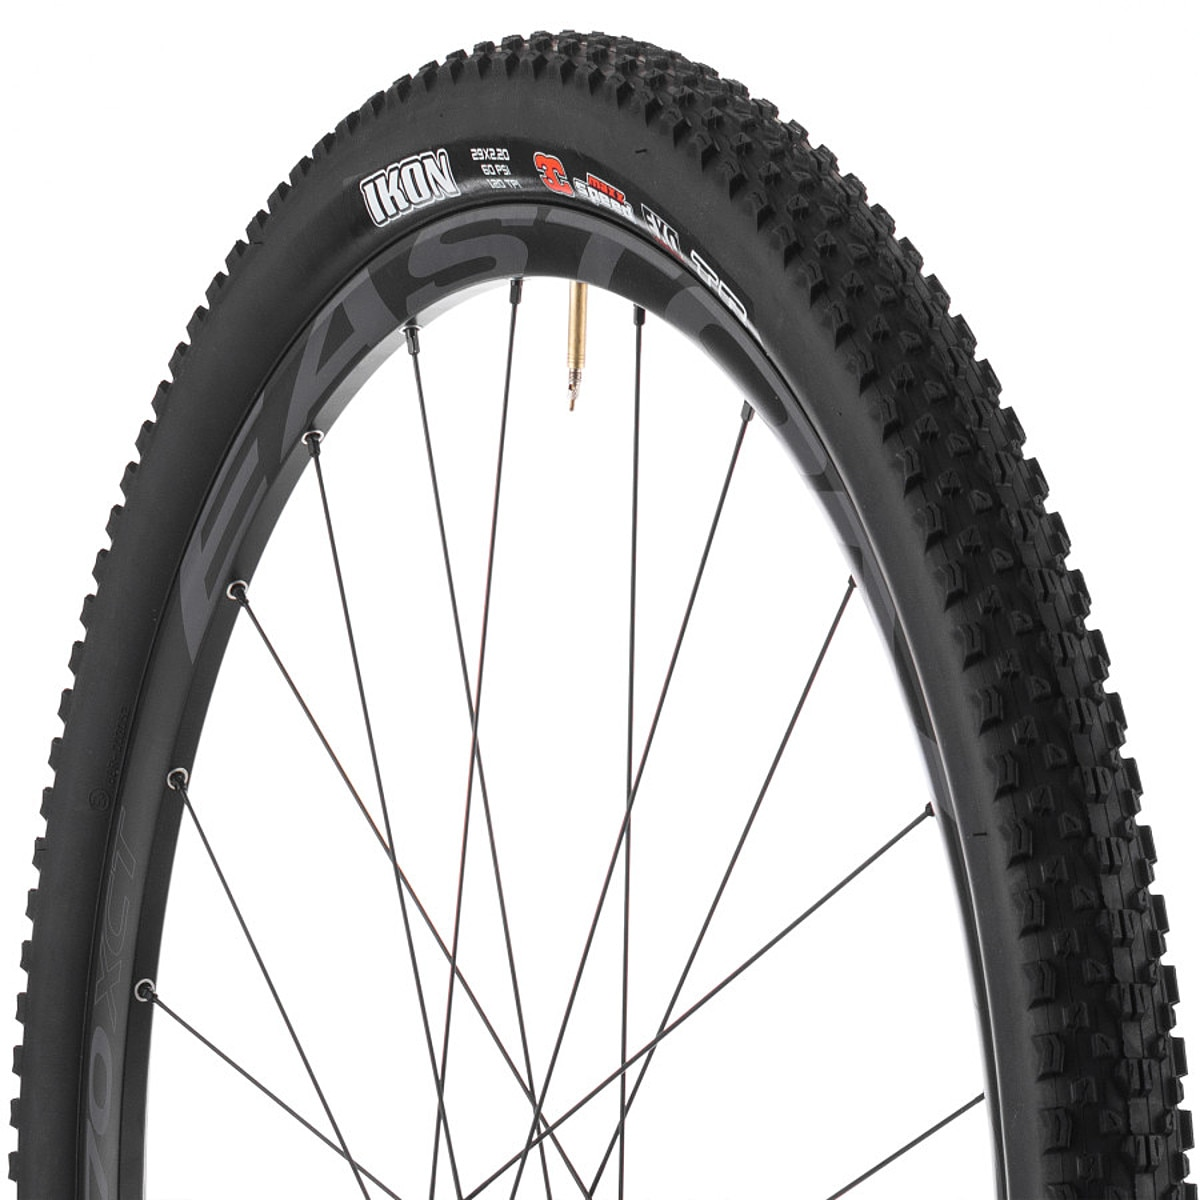 Maxxis Ikon 3C/EXO/TR Tire- 29in   Competitive Cyclist